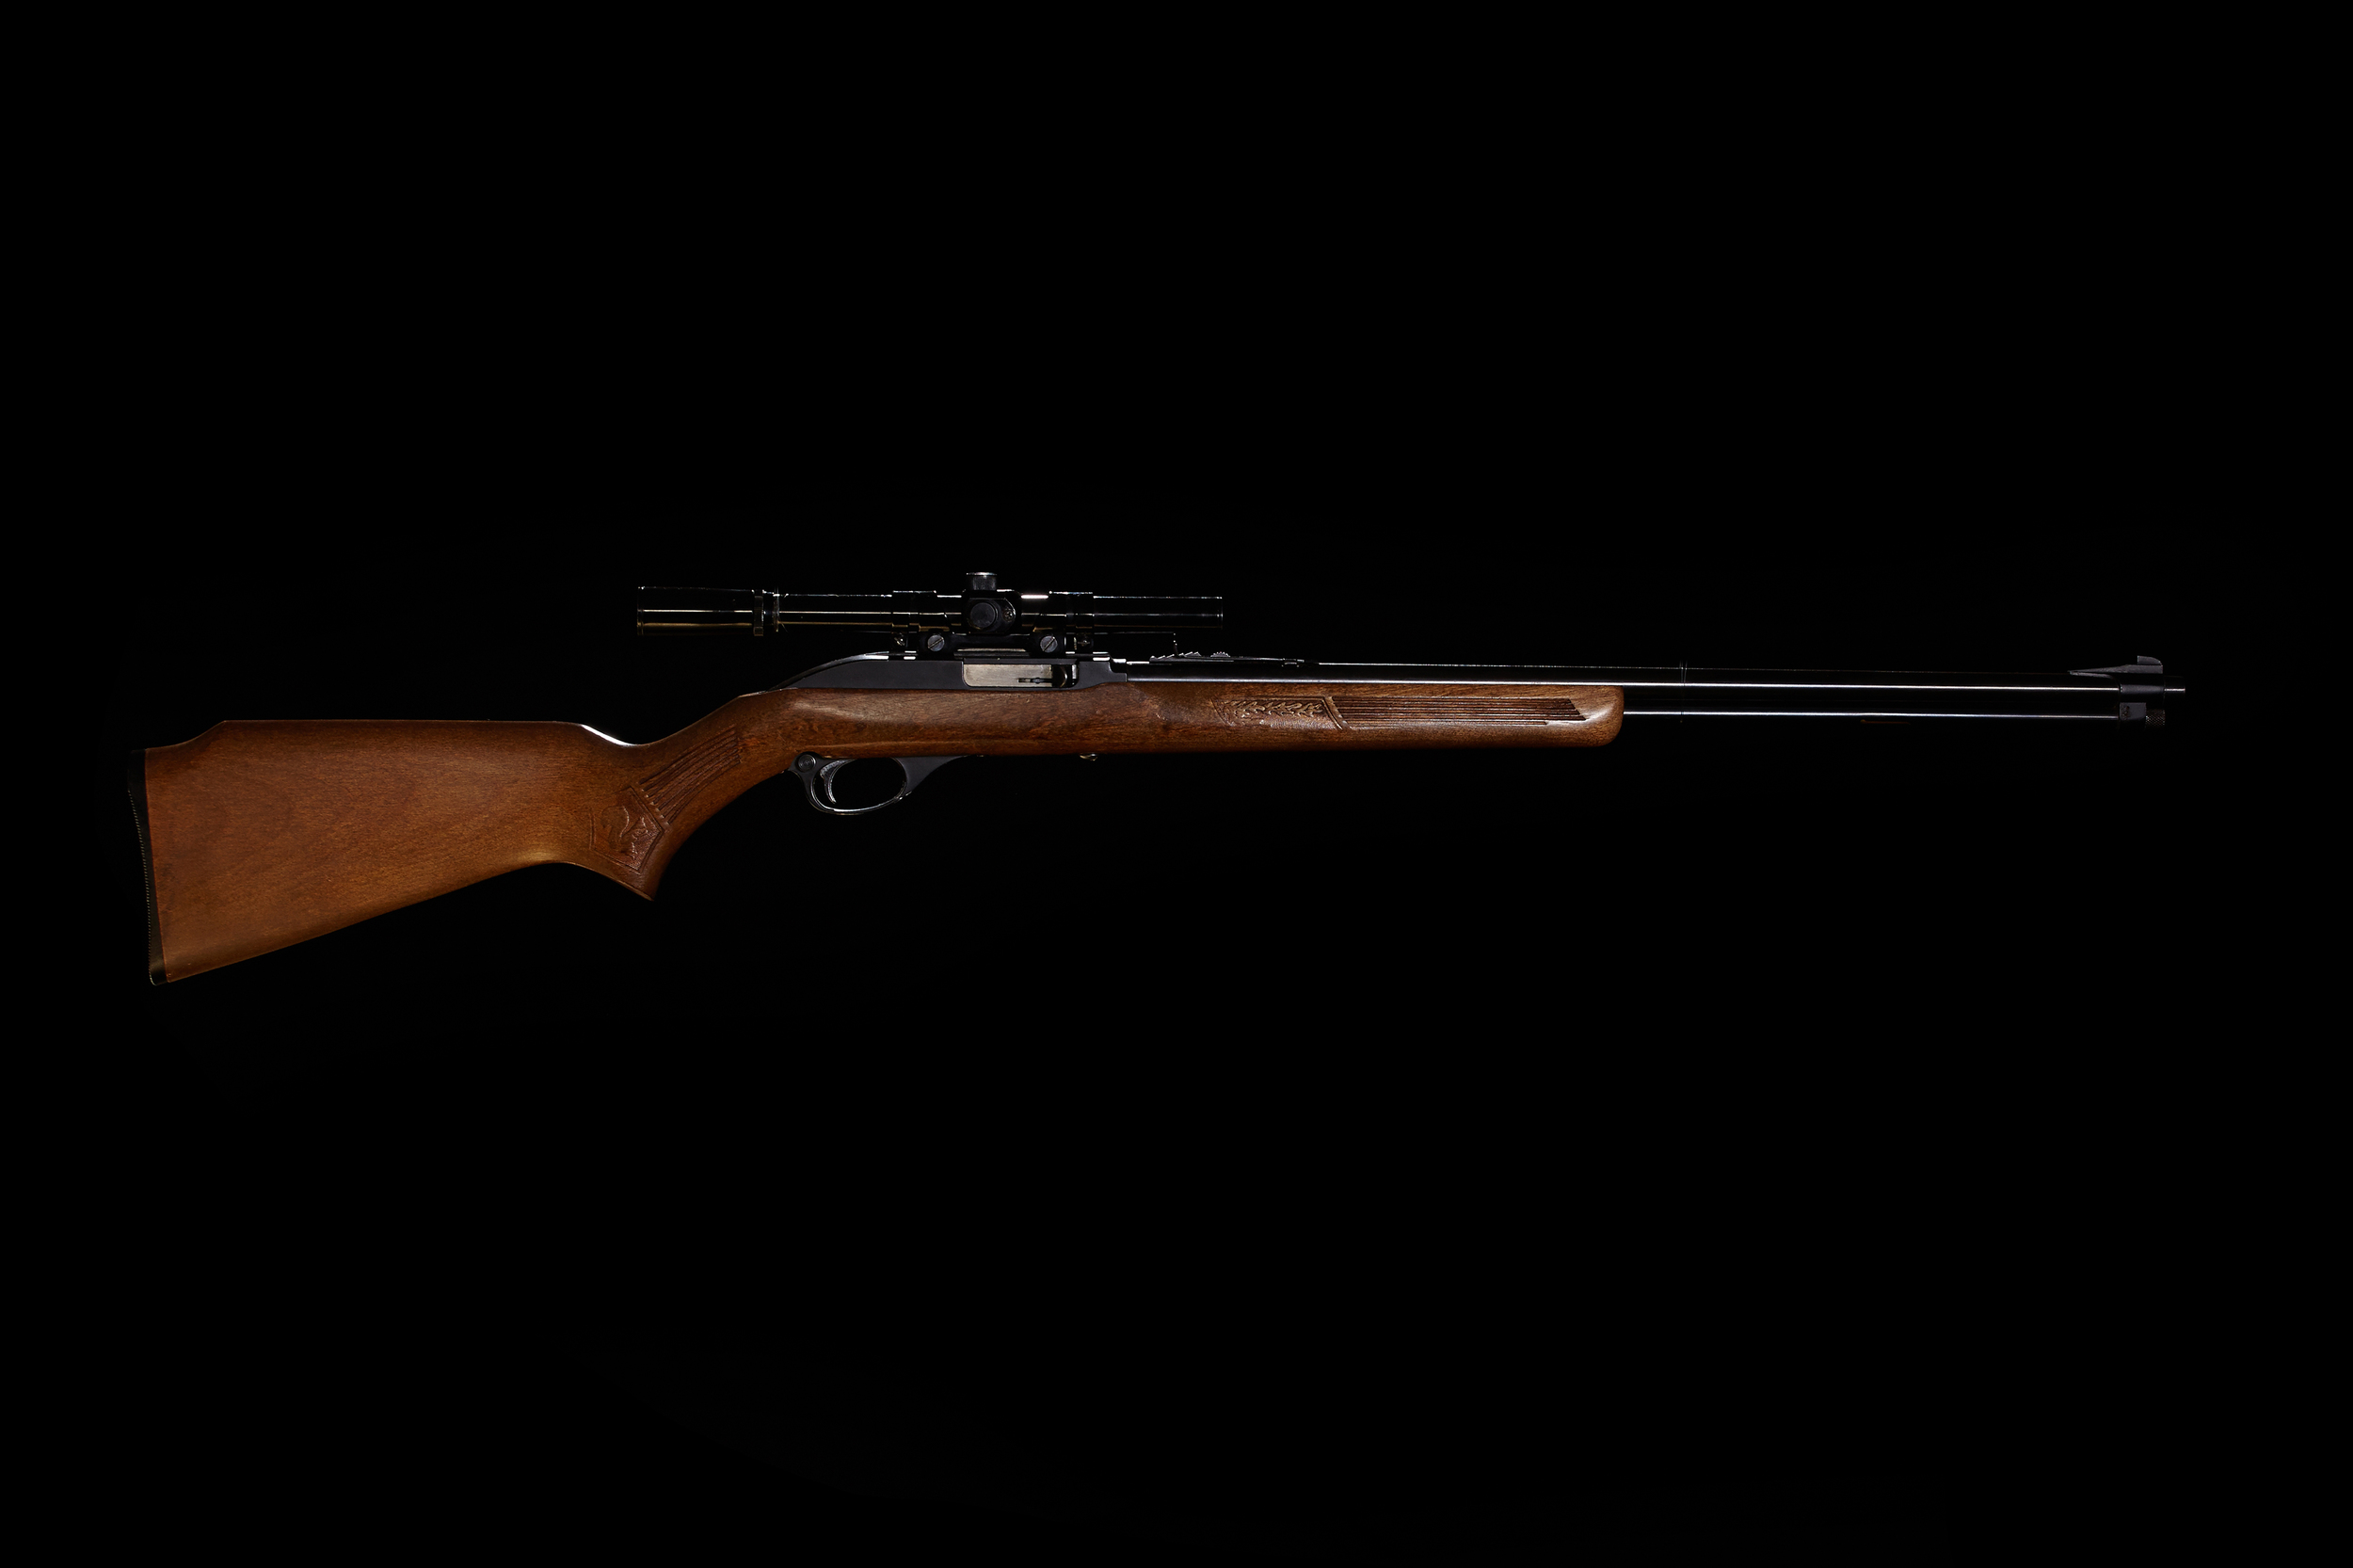 A Glenfield Model 60 just like the one my Grandpa took me to shoot when I was a child.